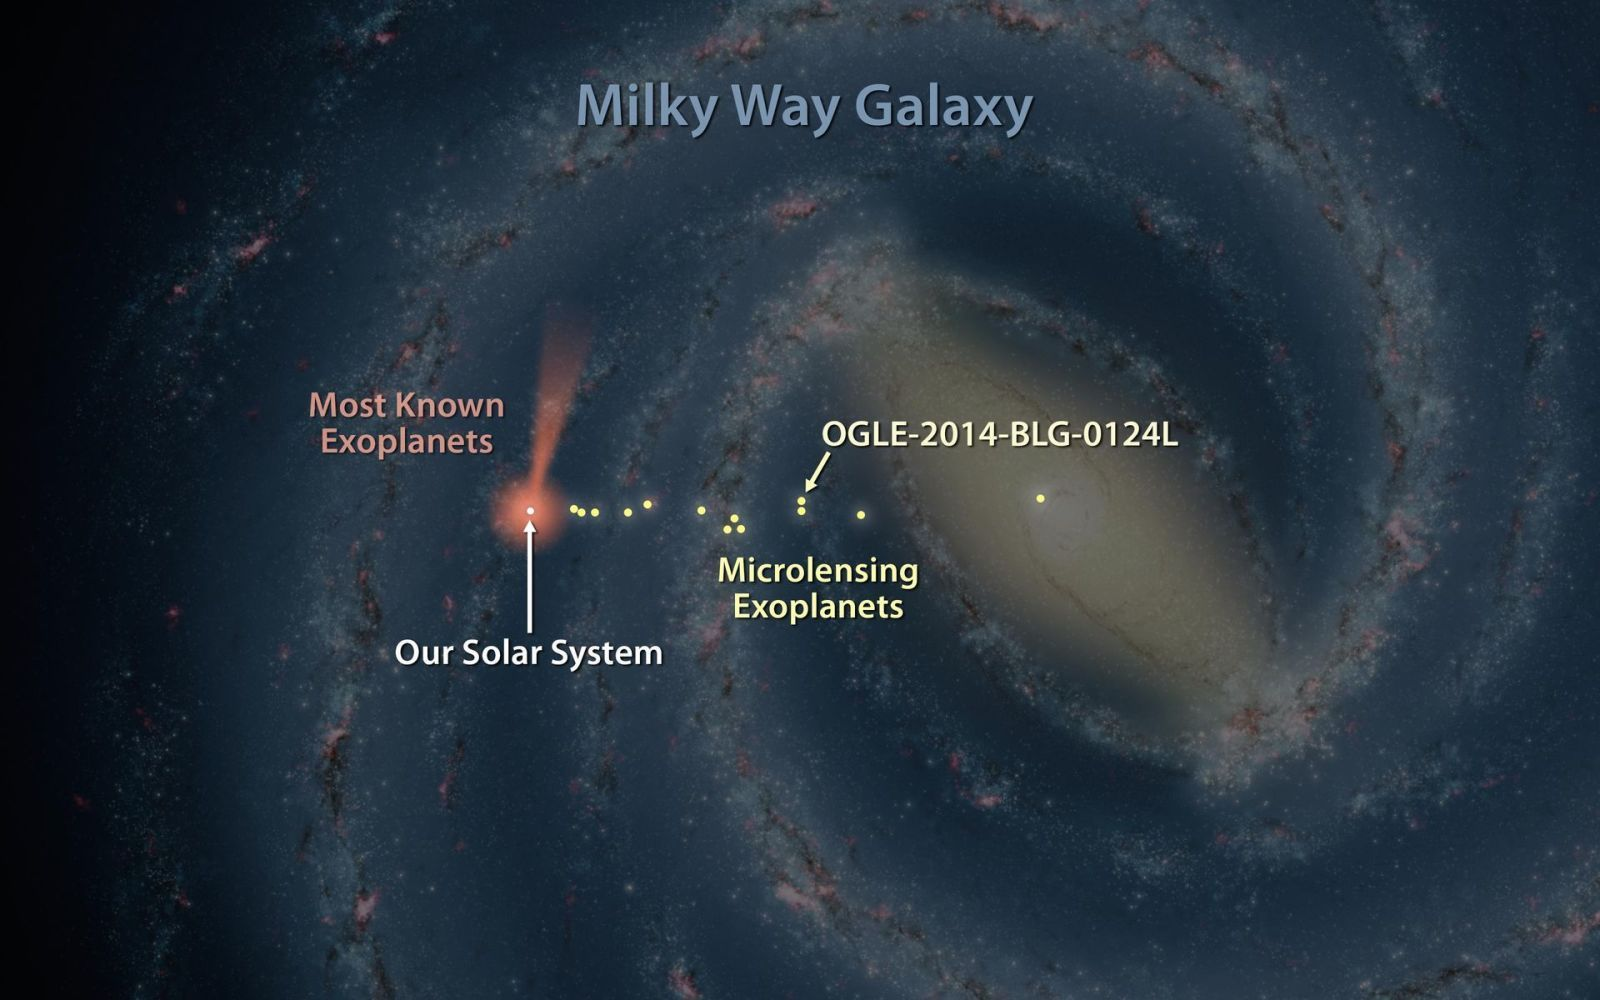 Milky Way Map Shows the Tiny Fraction of Planets We've Discovered So Far